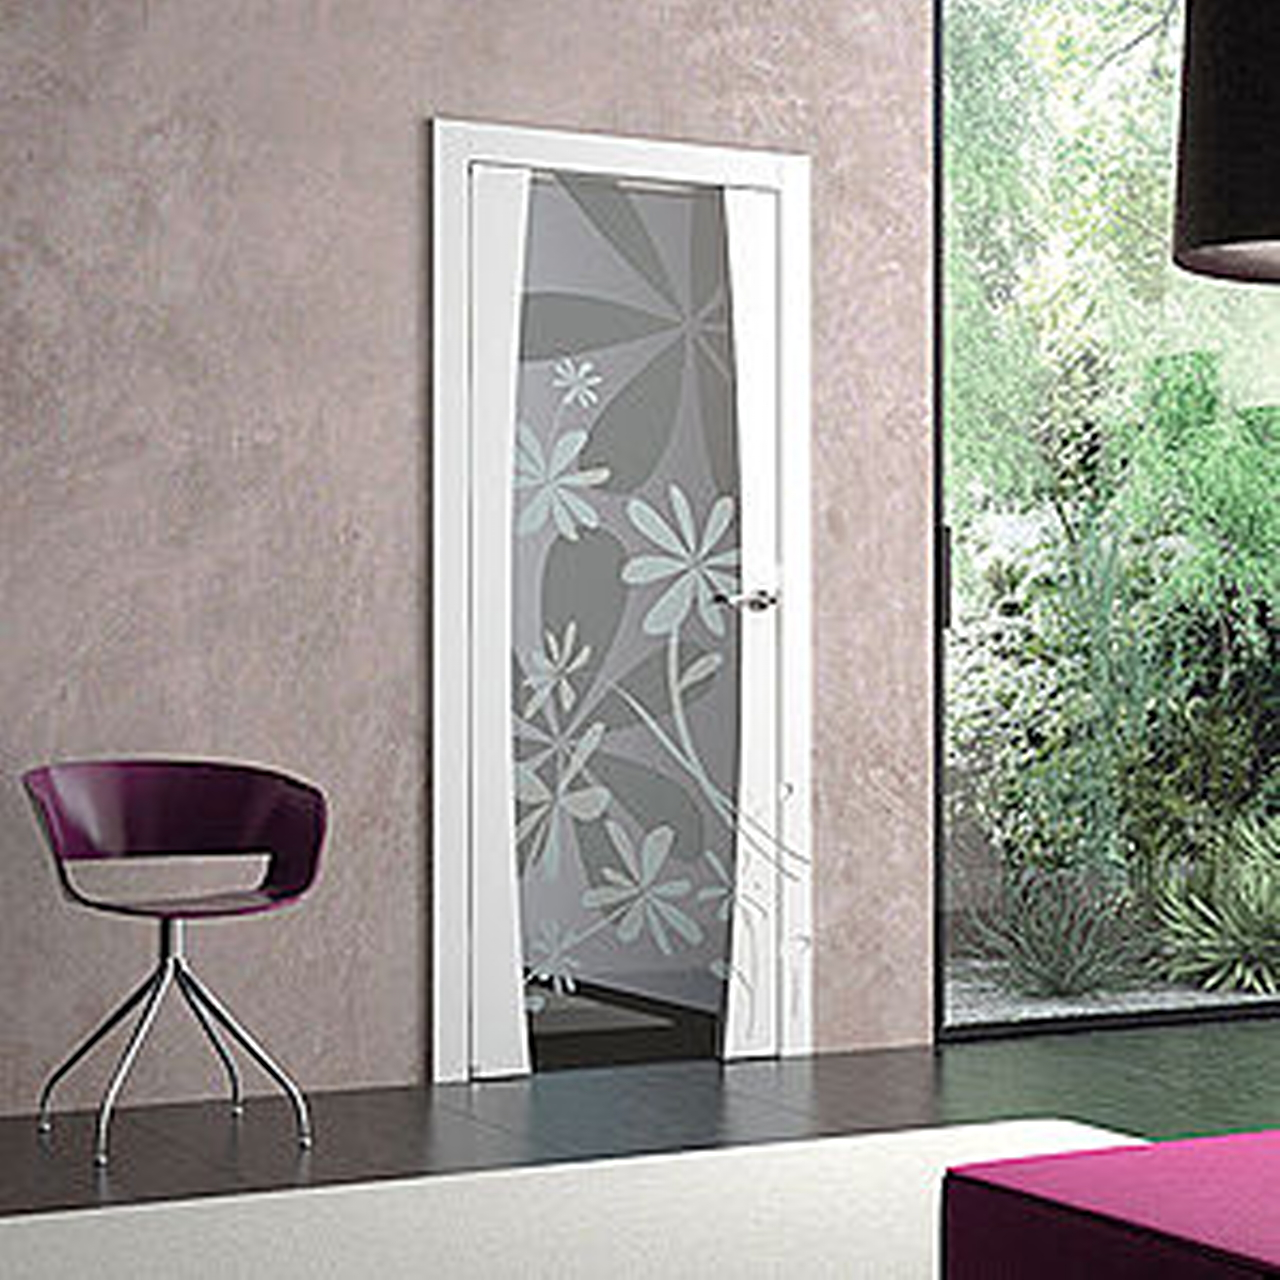 jazzy's interior decorating interior frosted glass doors